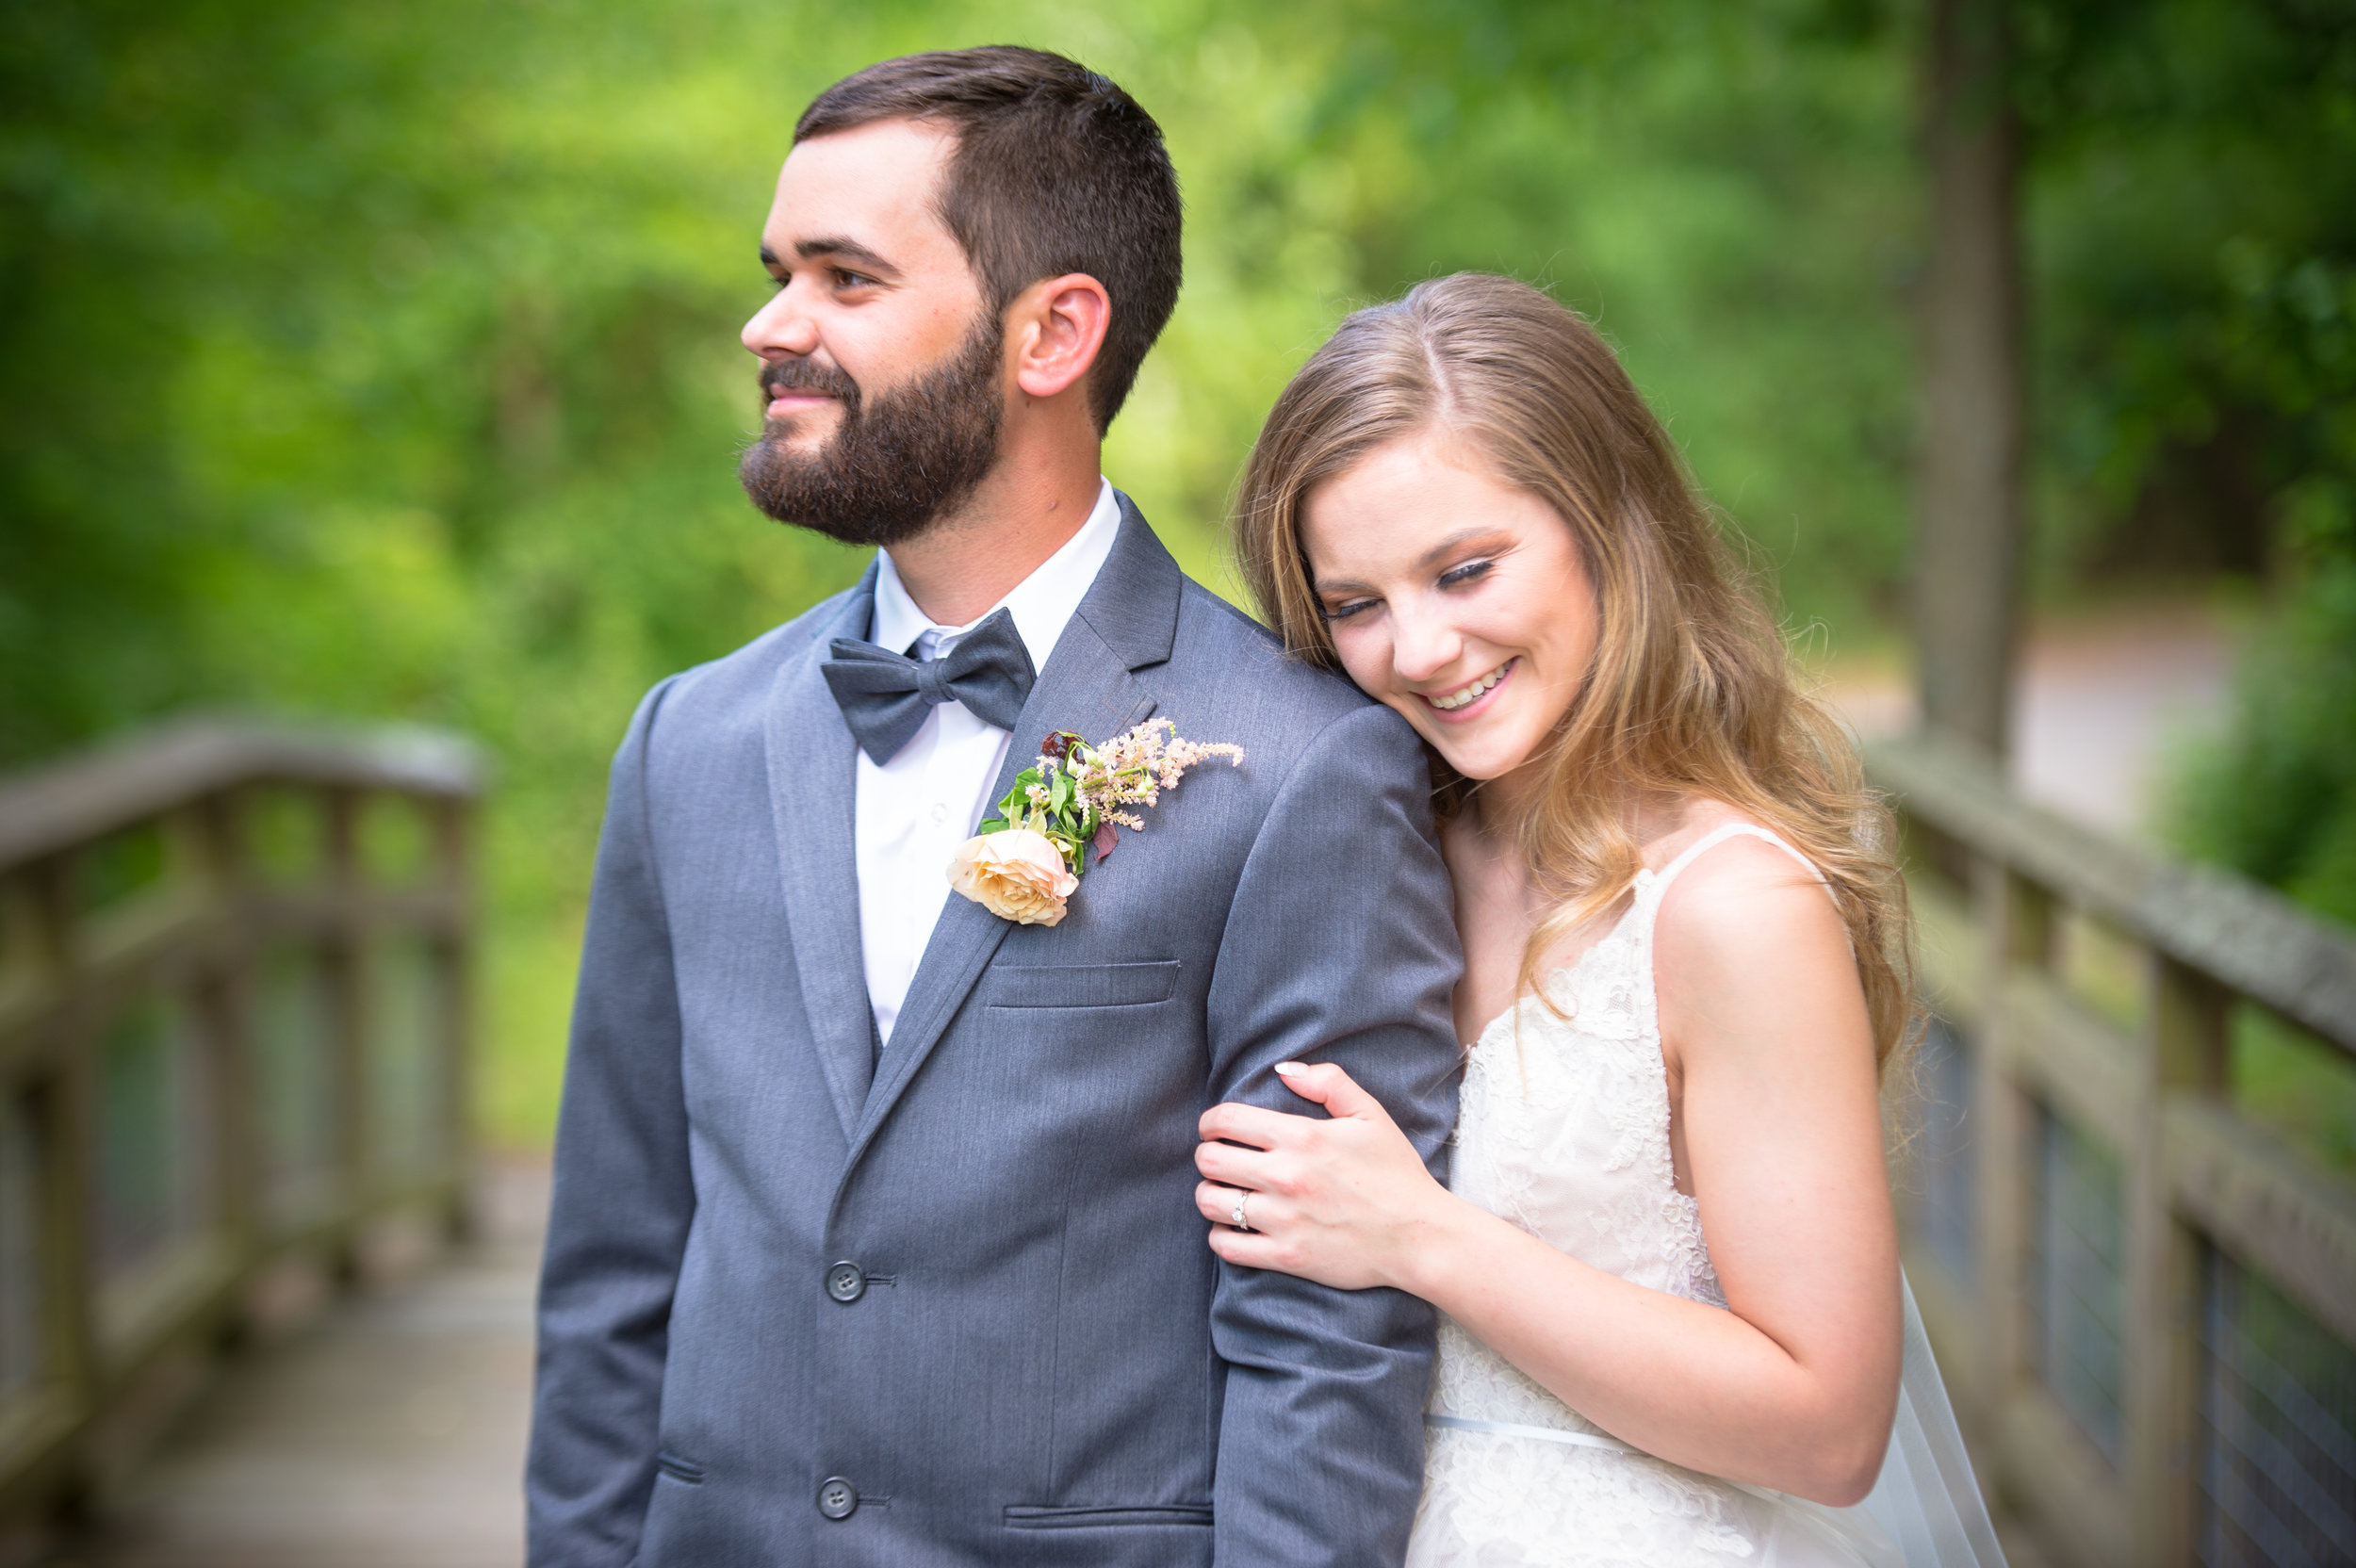 jessica-zimmerman-geometric-wedding-arkansas.jpg